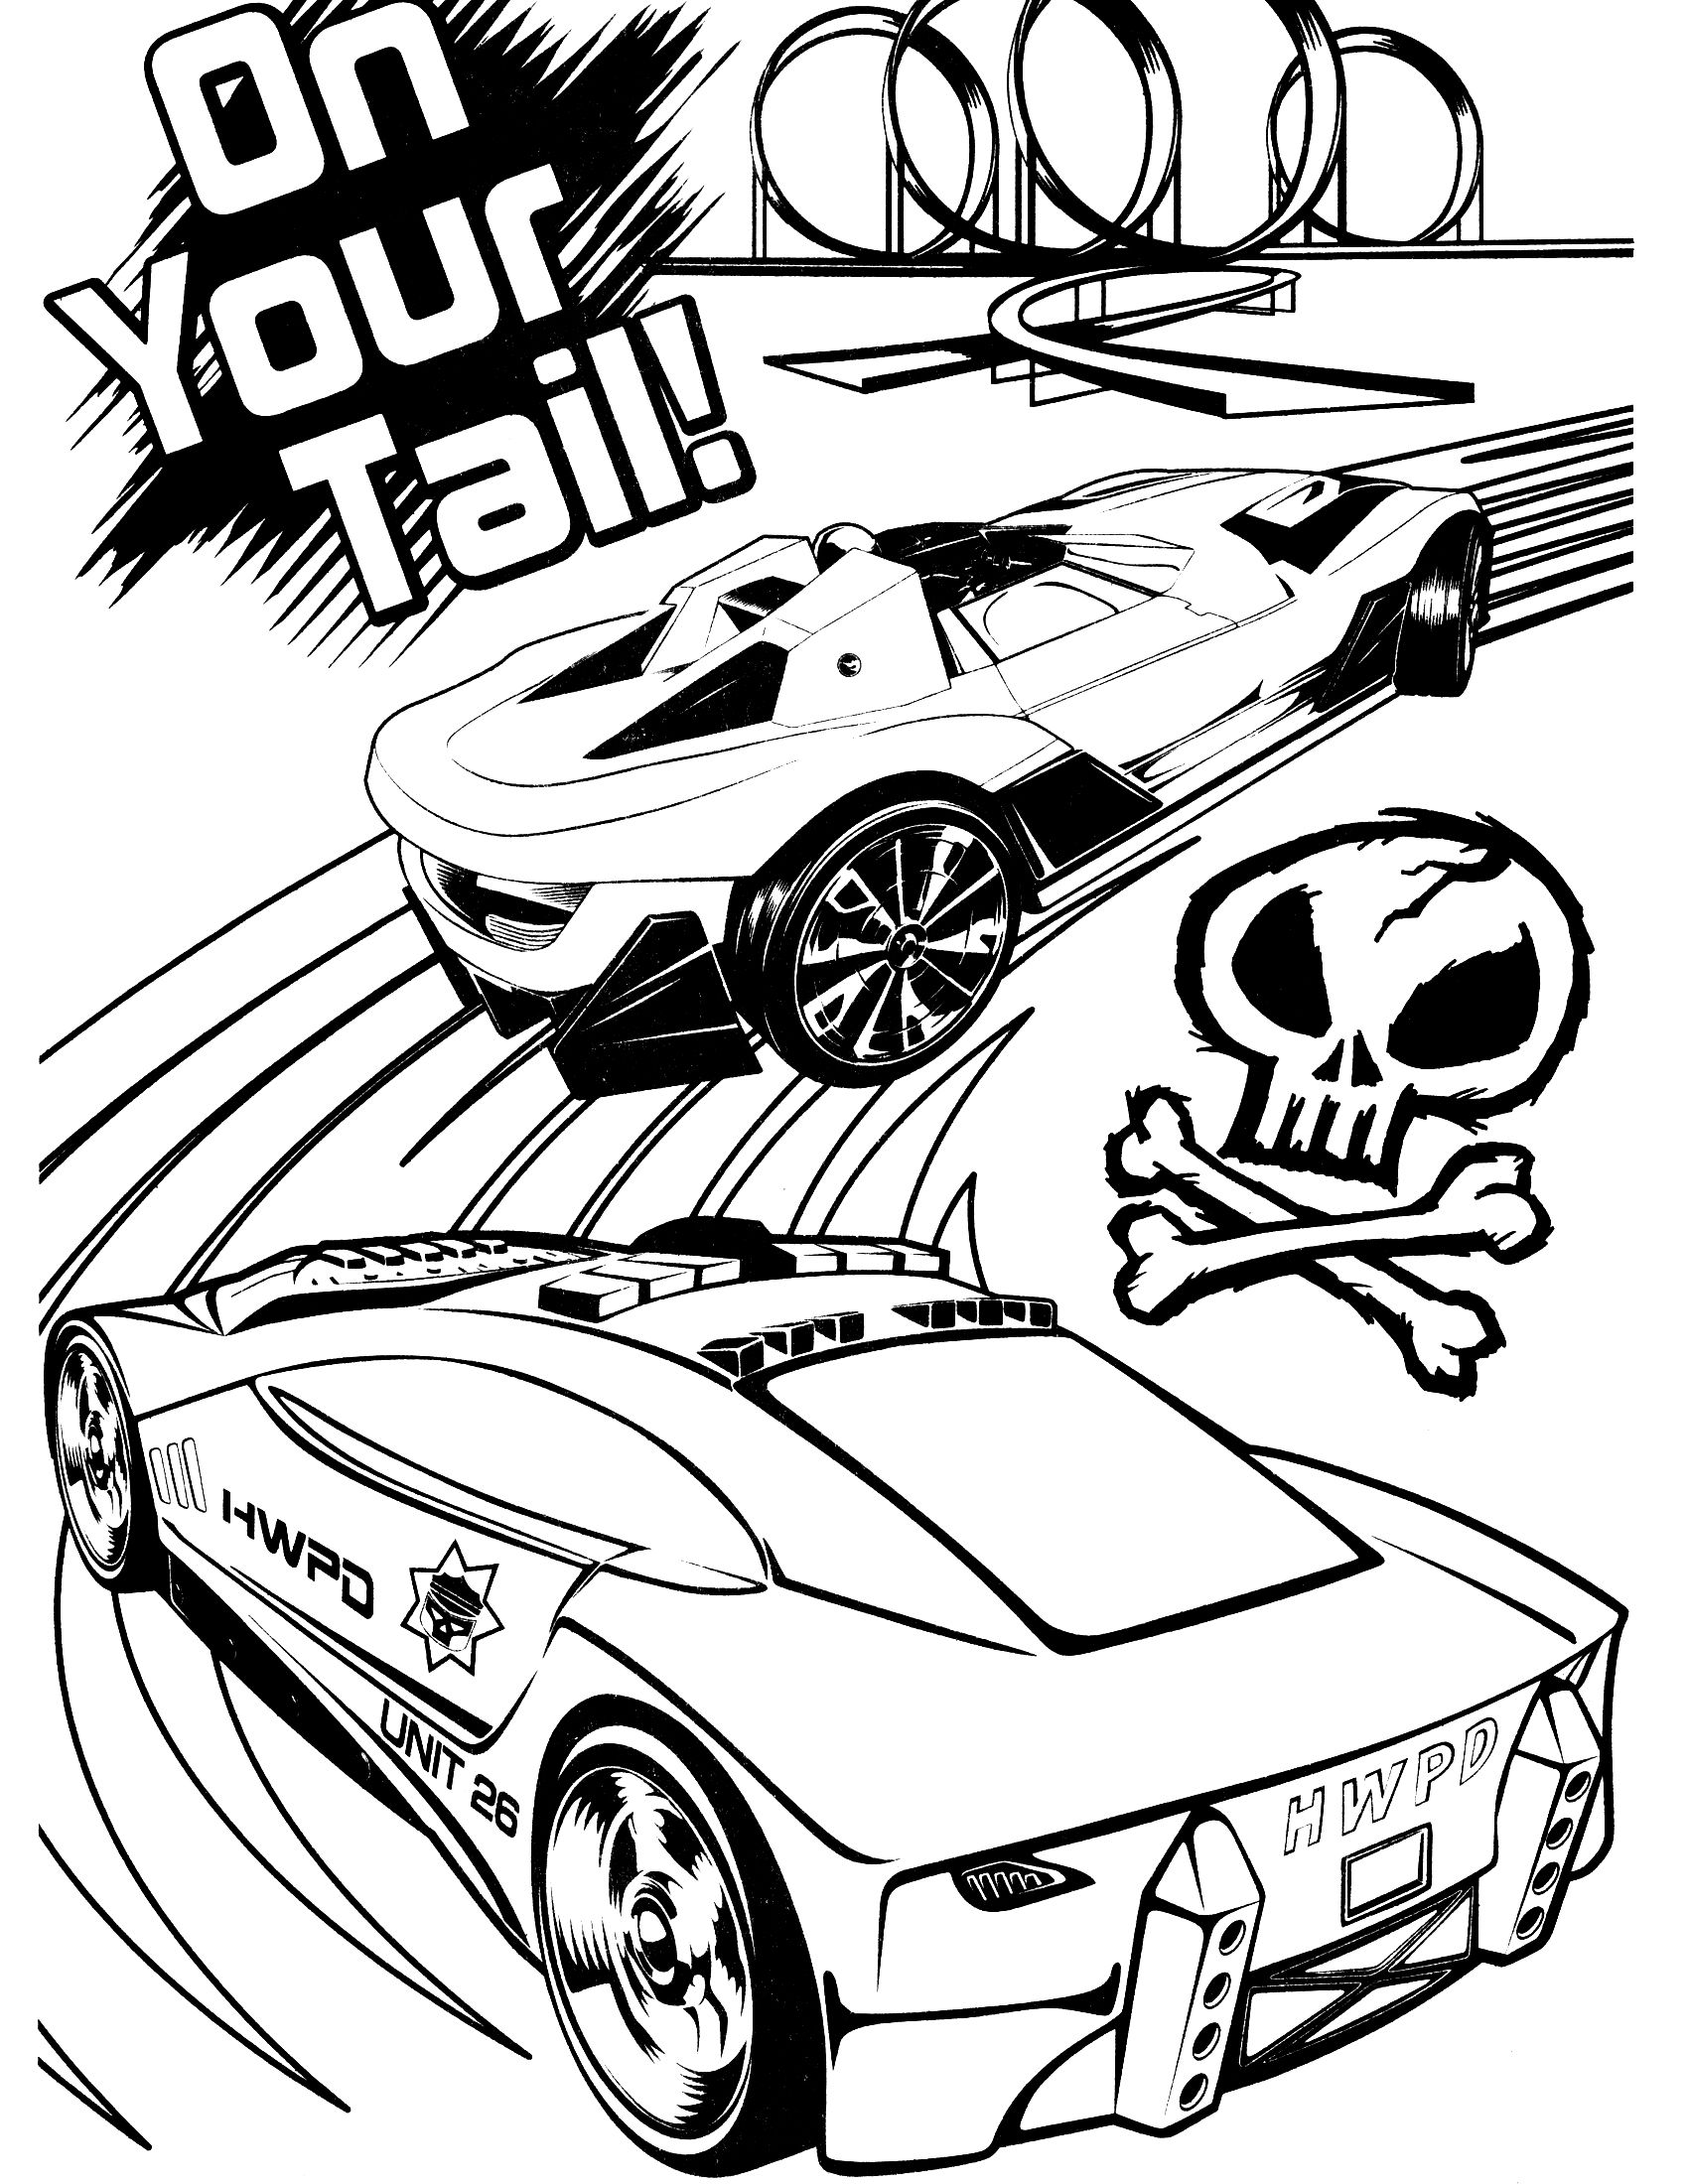 hot wheels images to print free printable hot wheels cars coloring pages print images wheels hot to print